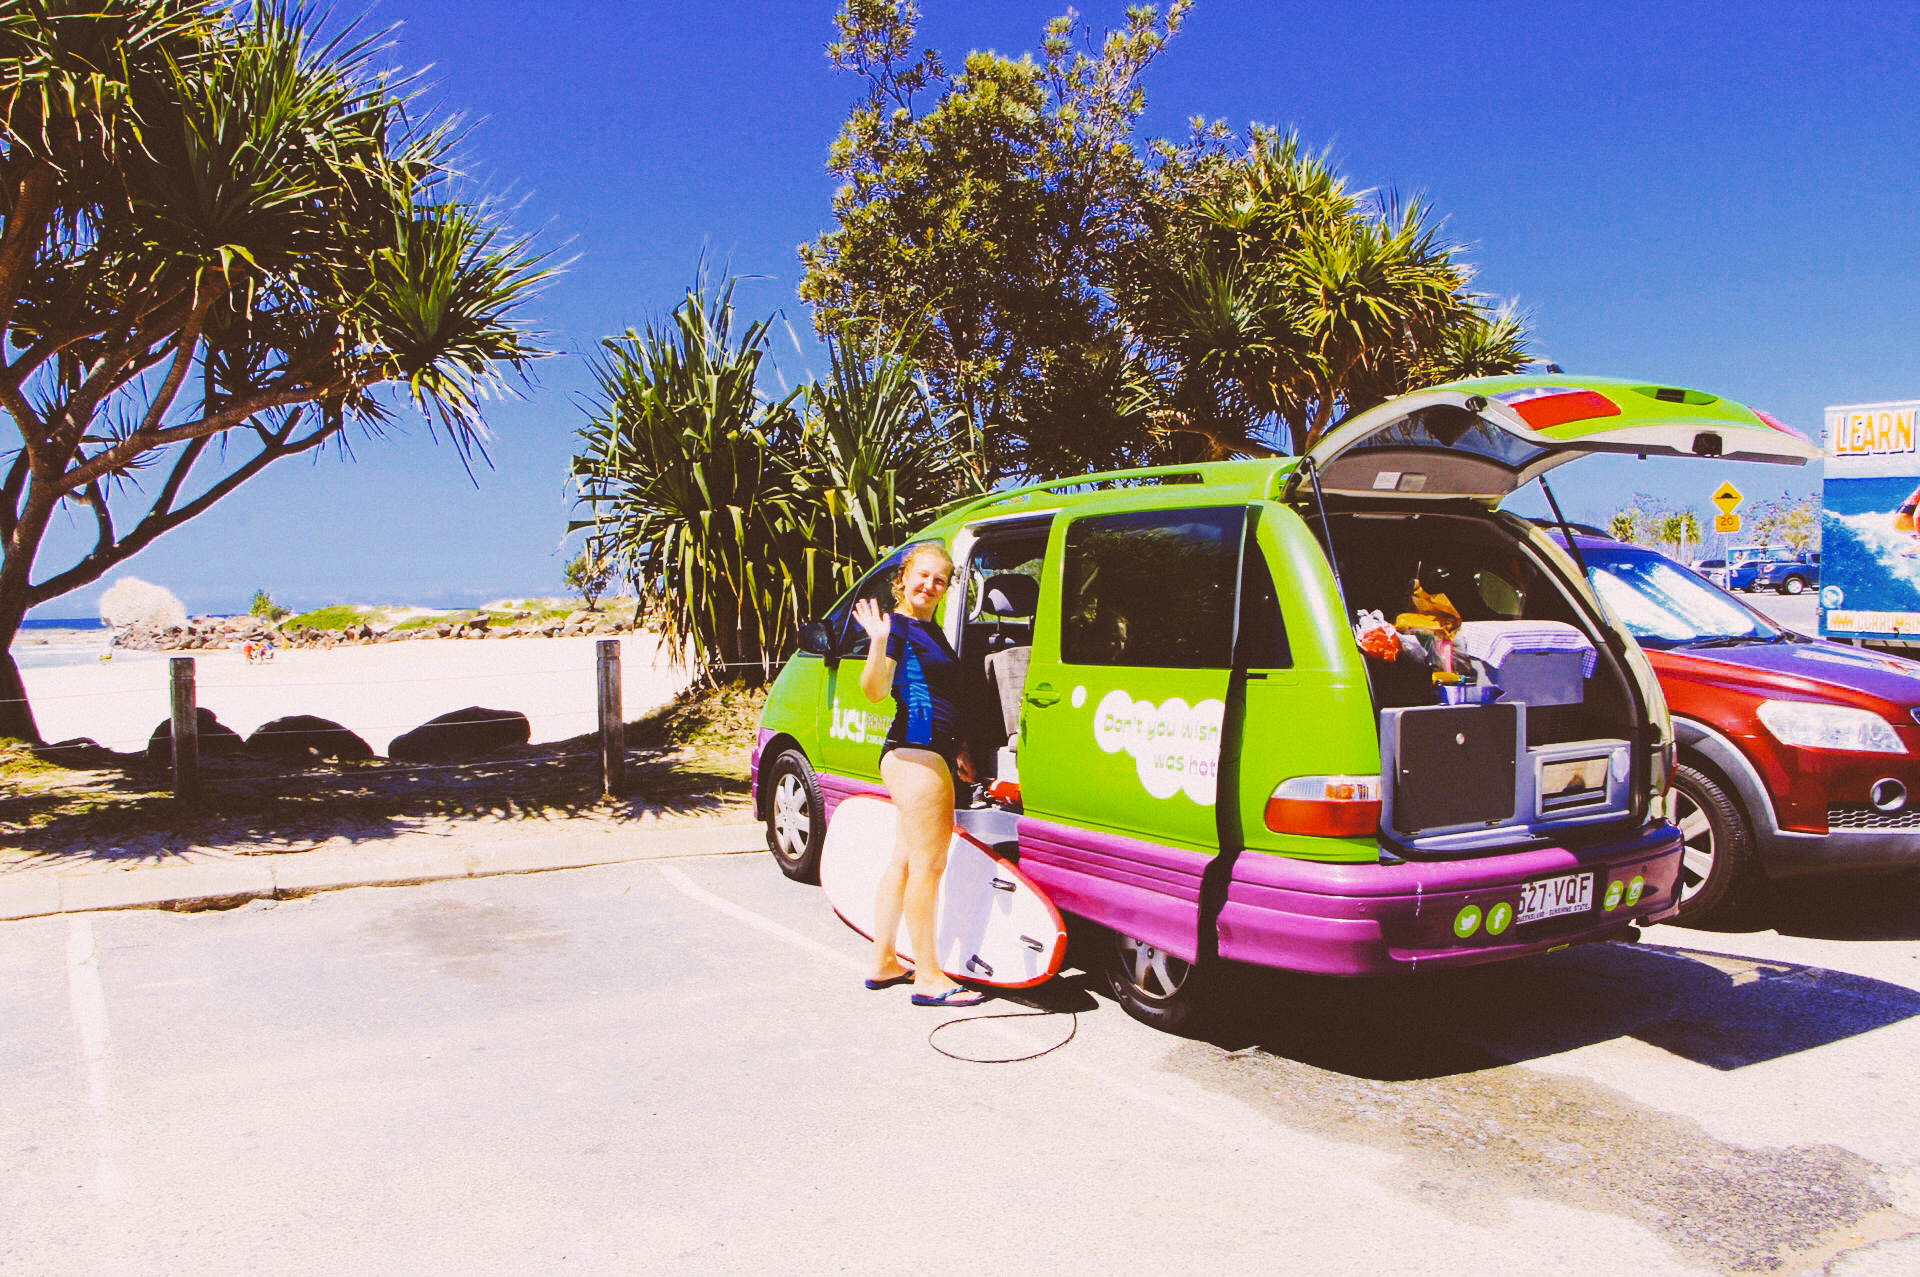 Jucy Campervan with surfboard at Currumbin, Australia